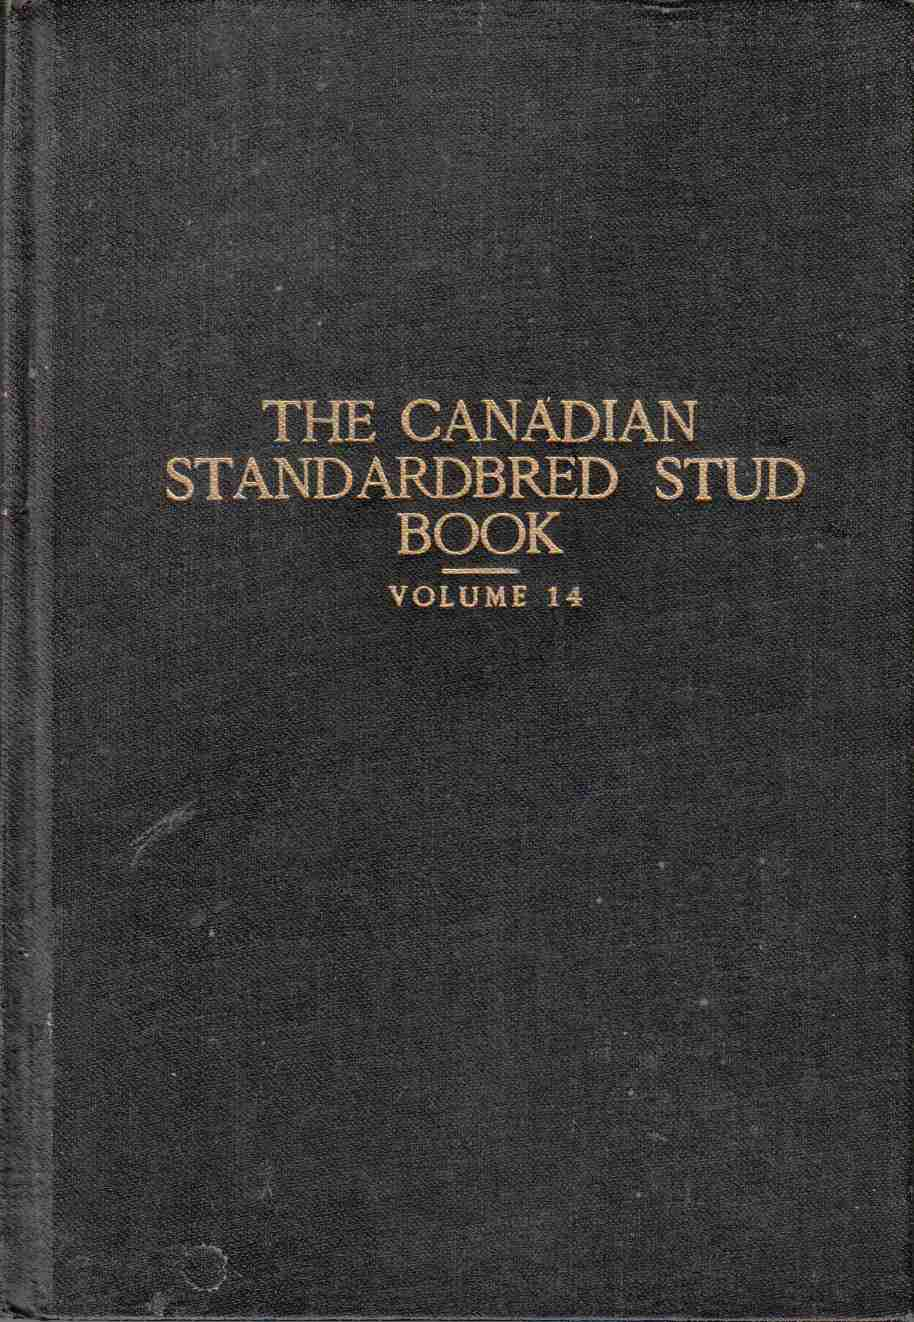 Image for The Canadian Standardbred Stud Book Volume 14